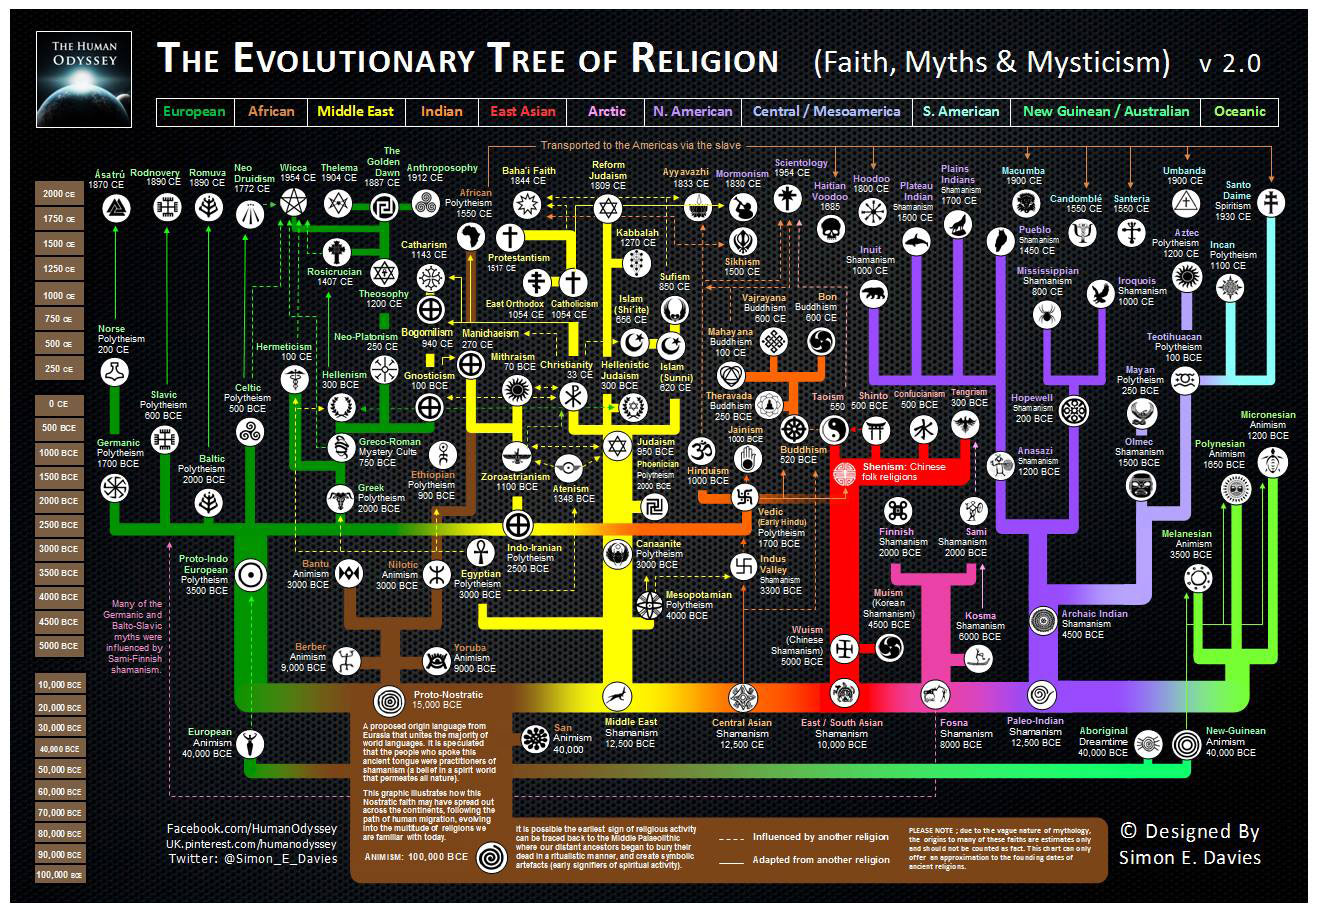 Here S An Awesome Map Of The Evolution Of World Religions